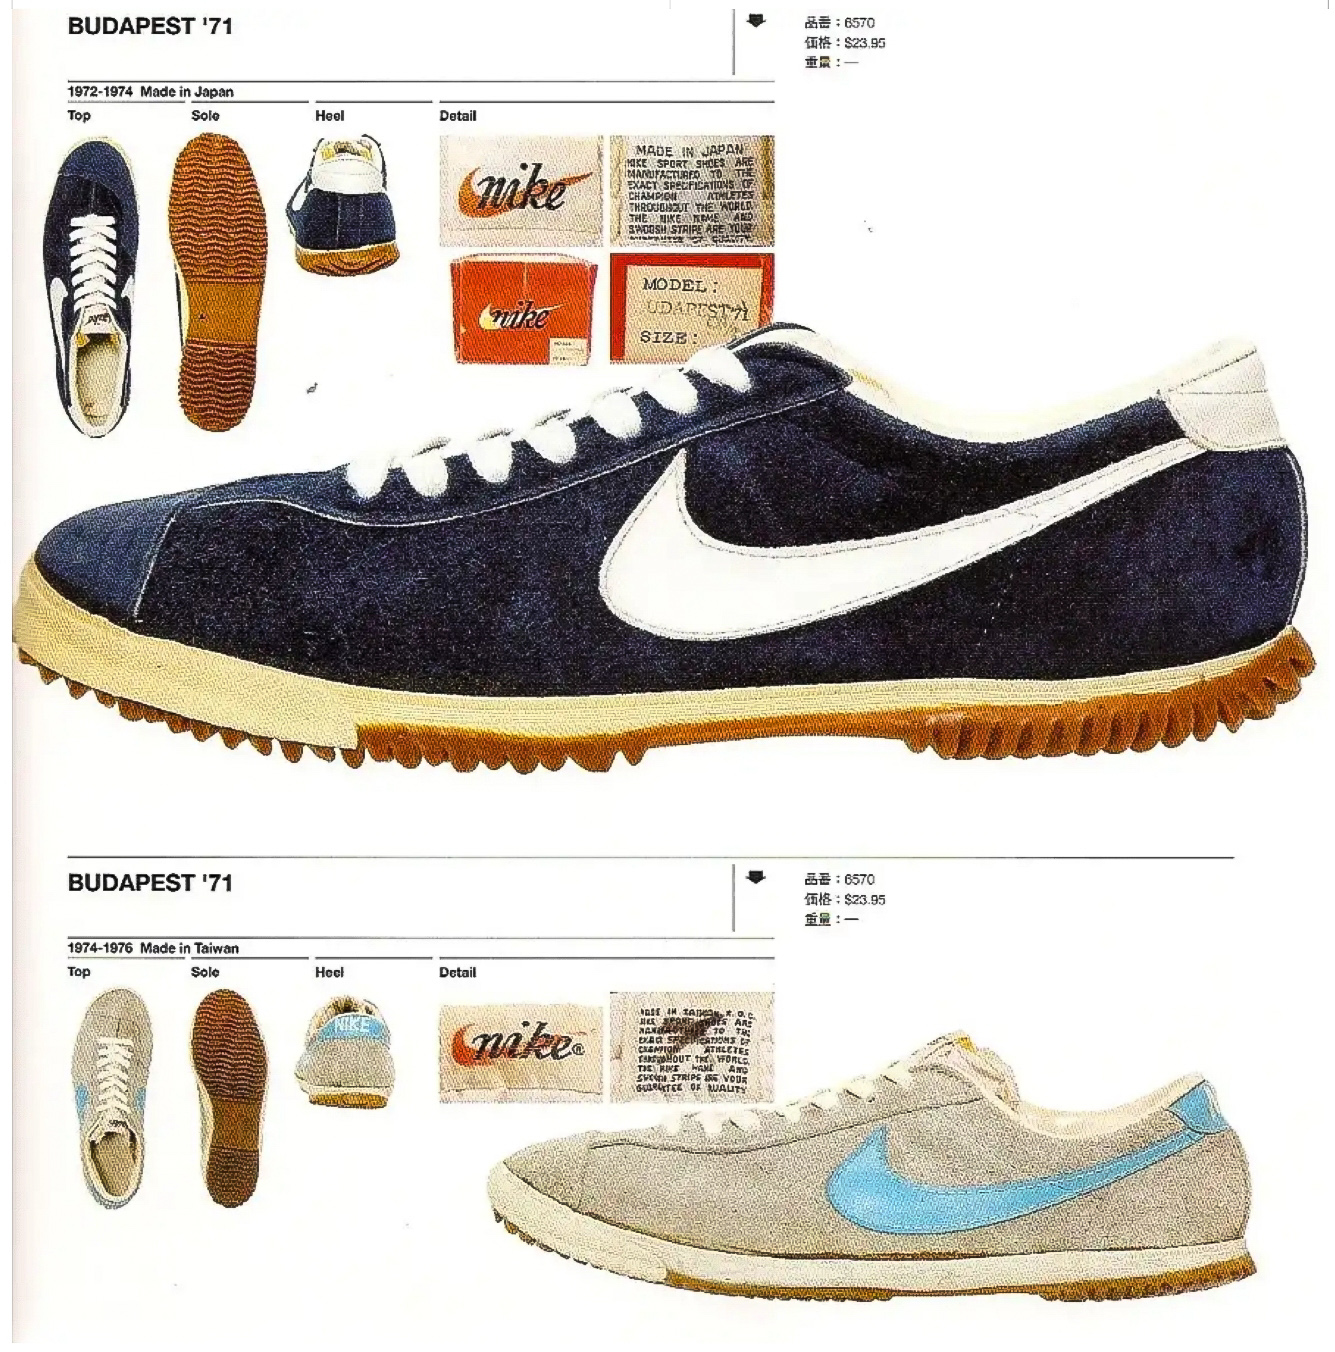 cozy fresh 8fbc7 4da6d Nike 1971 Nike Budapest Size 8.5 - Low-Top Sneakers for Sale